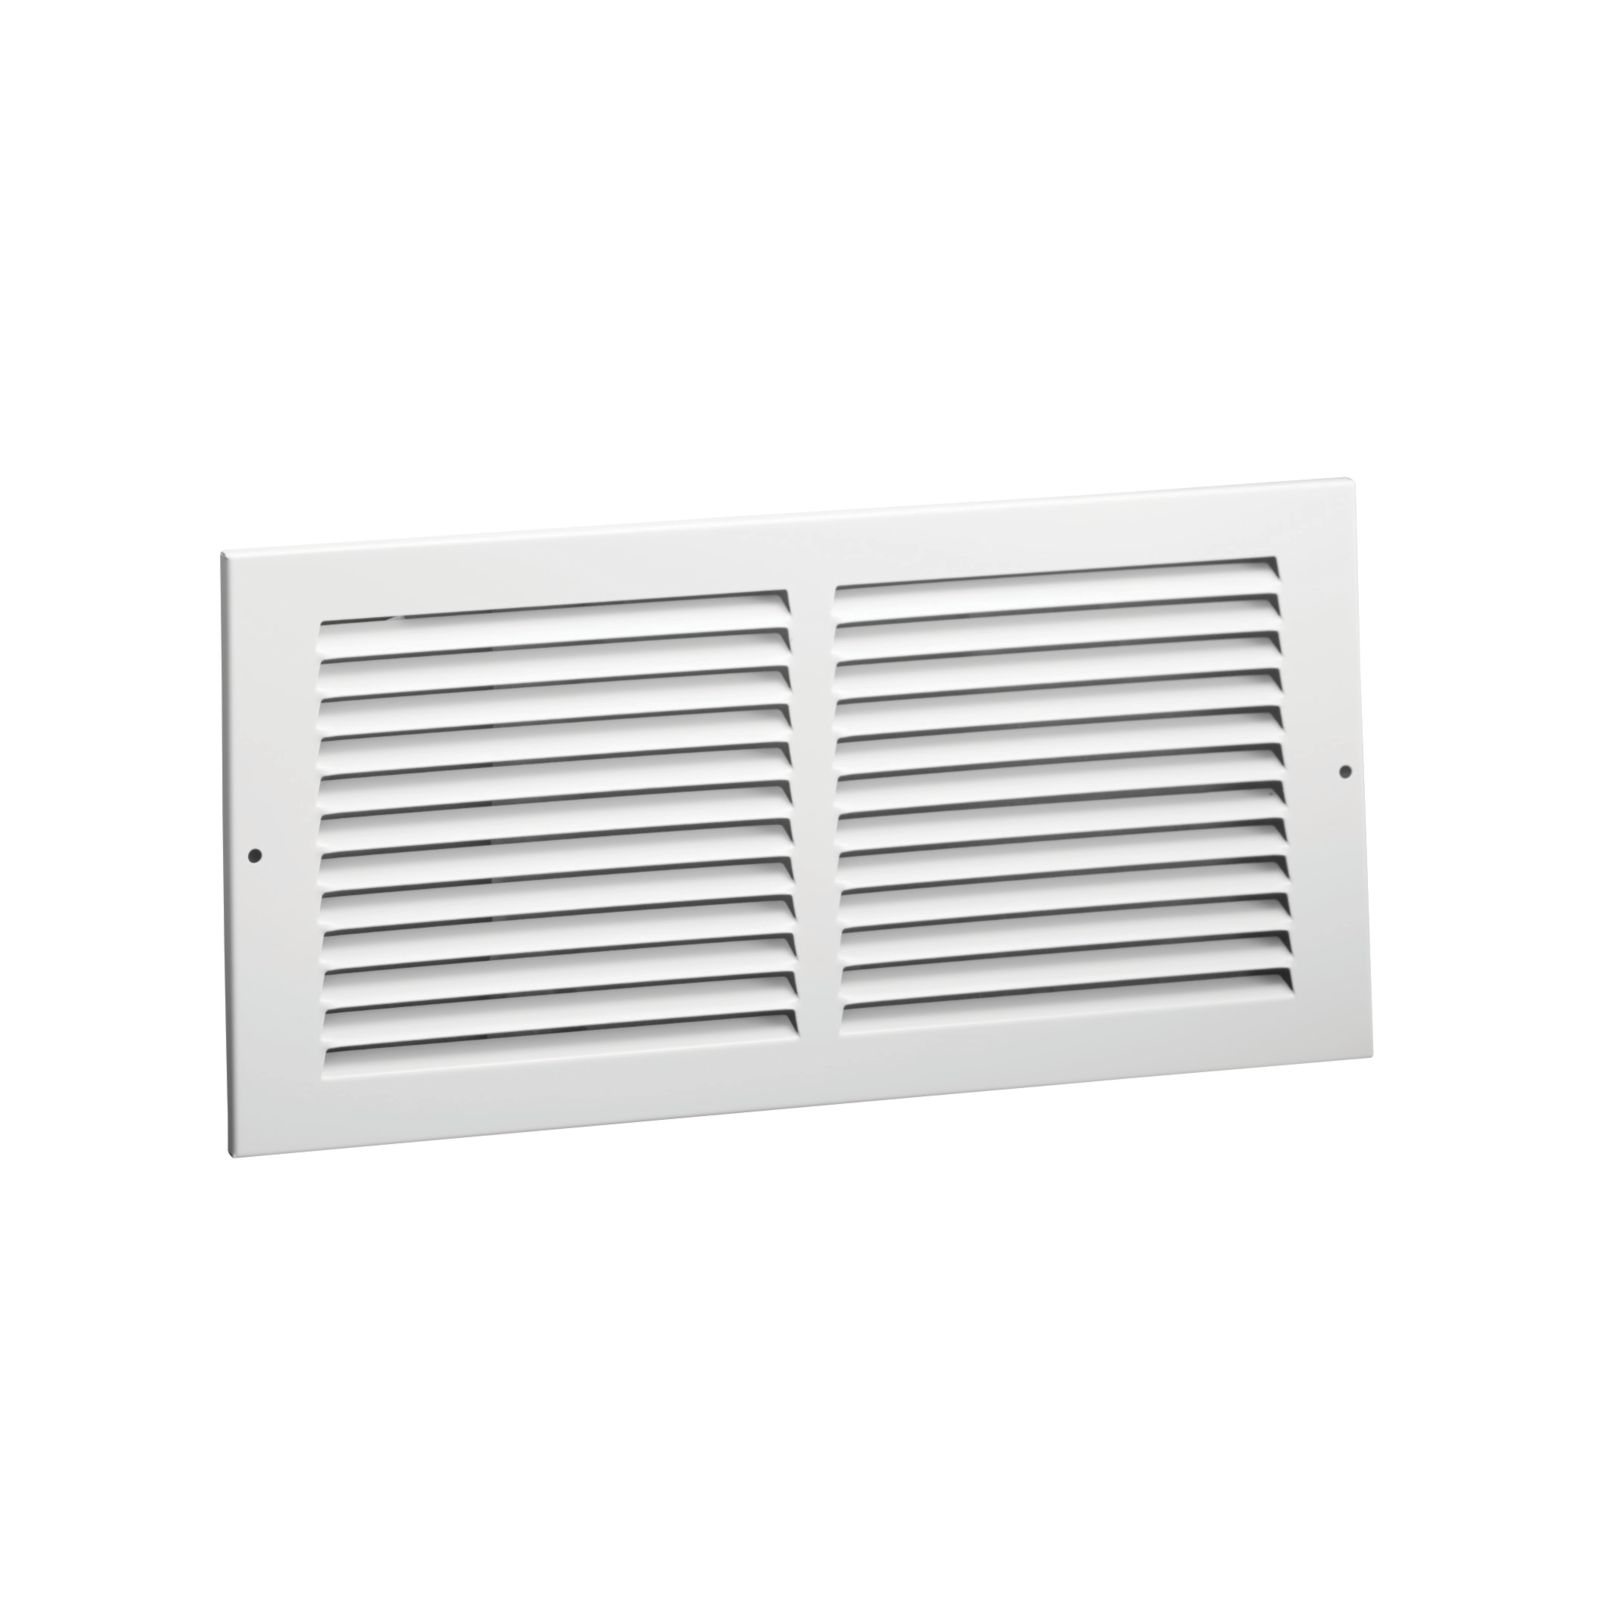 "Hart & Cooley 043305 - #672 Steel Return Air Grille, White Finish, 8"" X 8"""